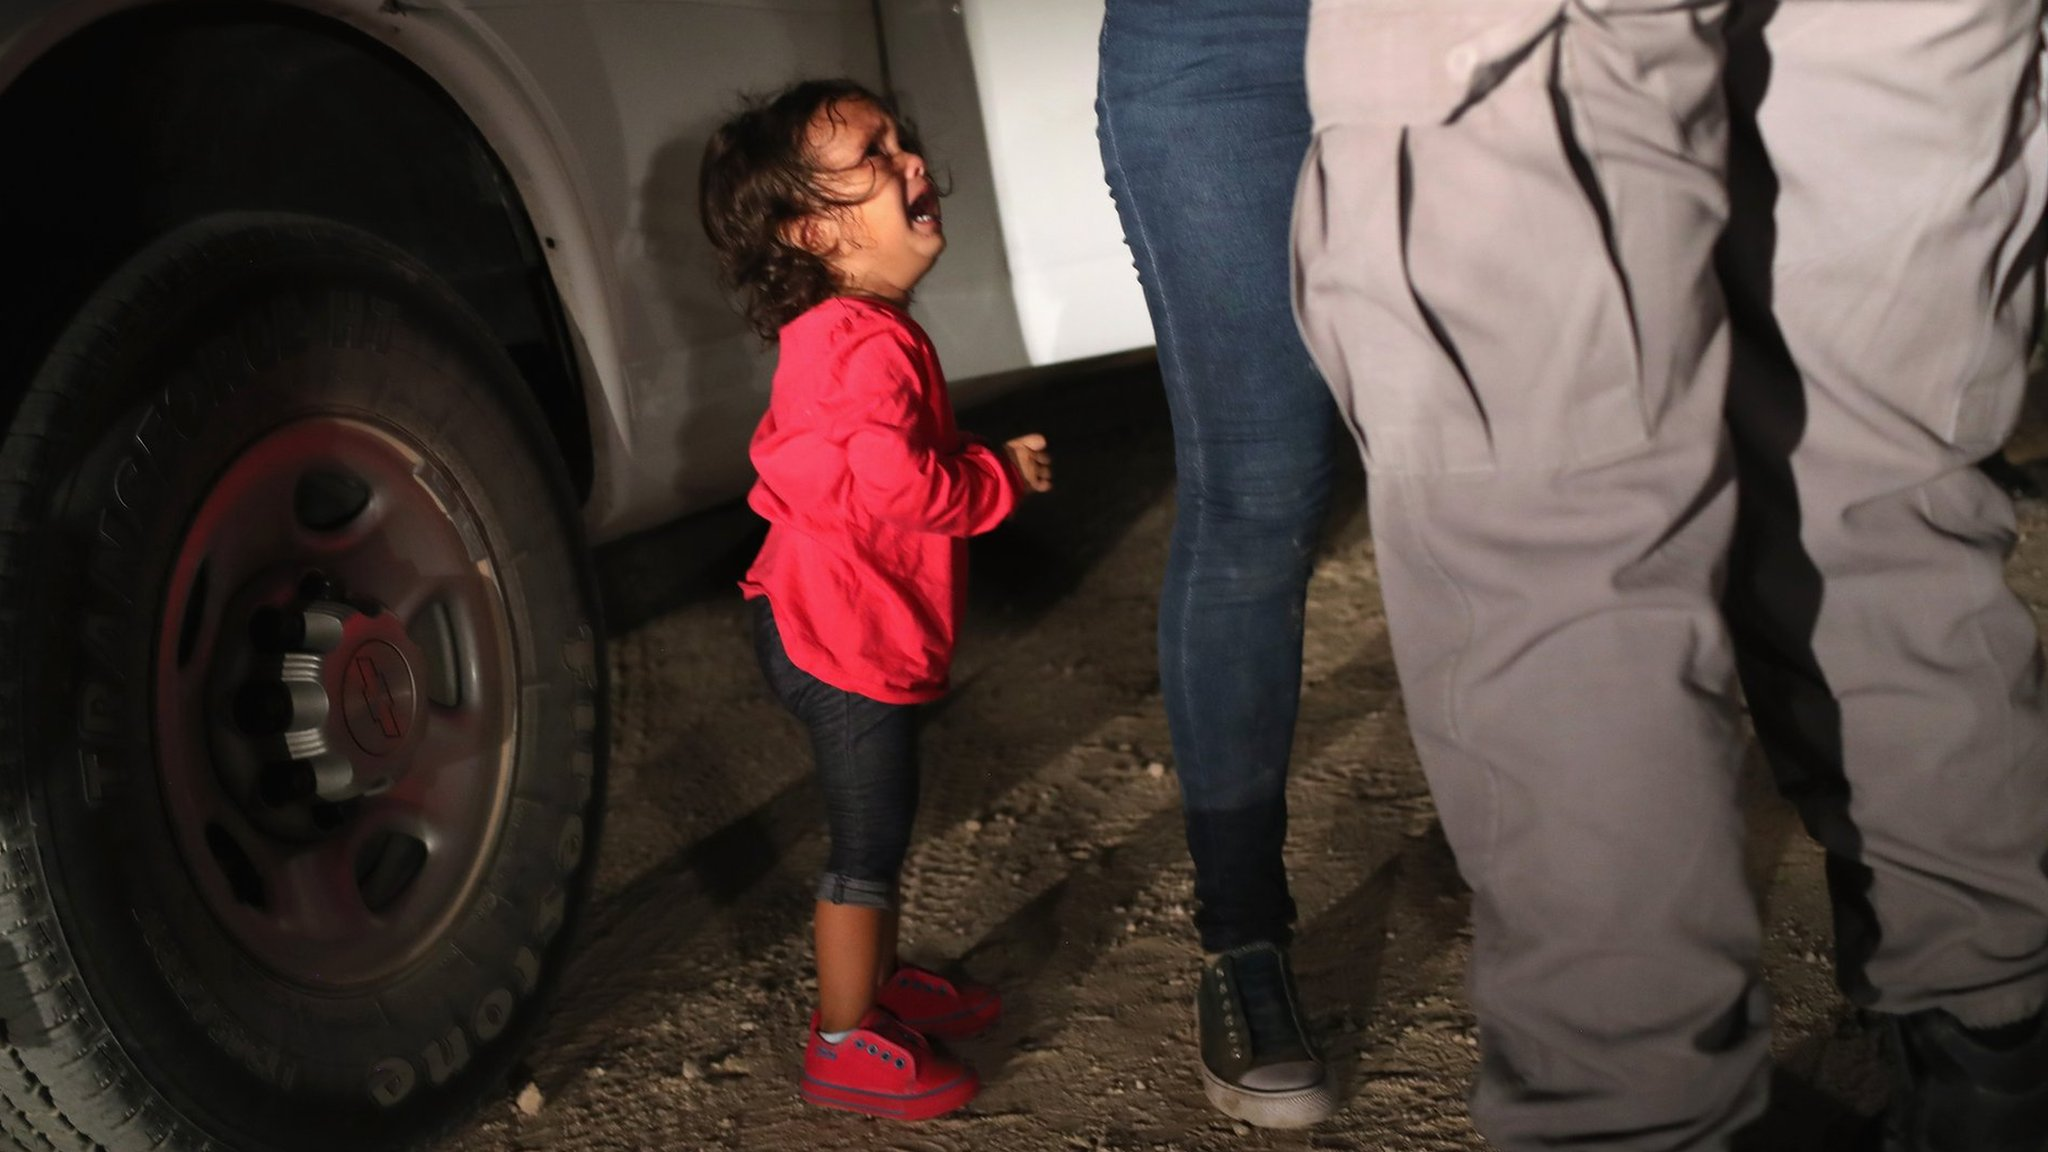 US child migrants: Melania speaks out on Trump separation policy